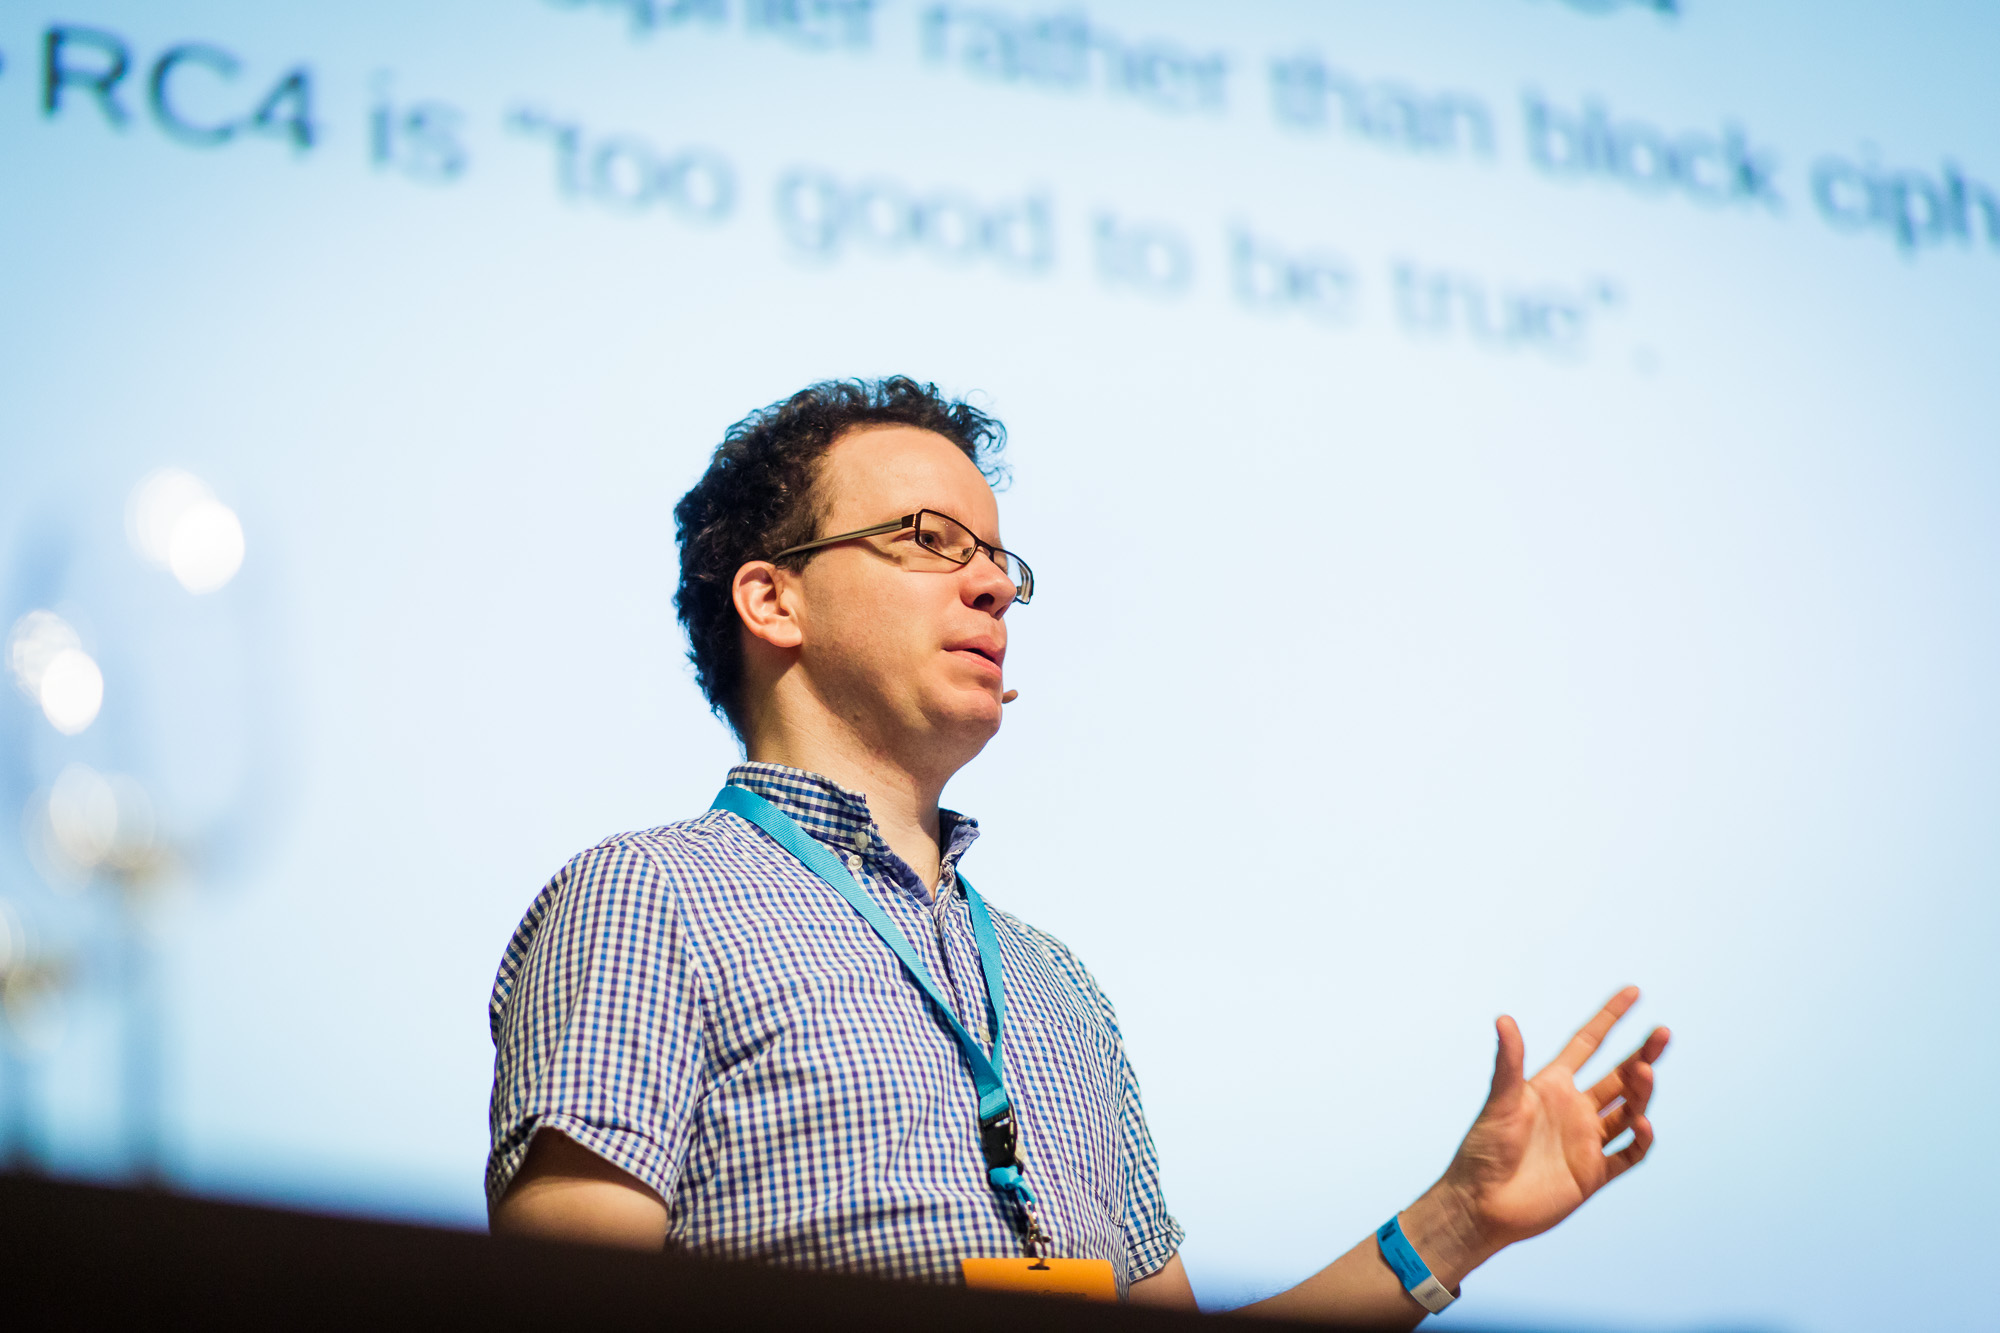 Martijn Grooten at NCSC One Conference 2016